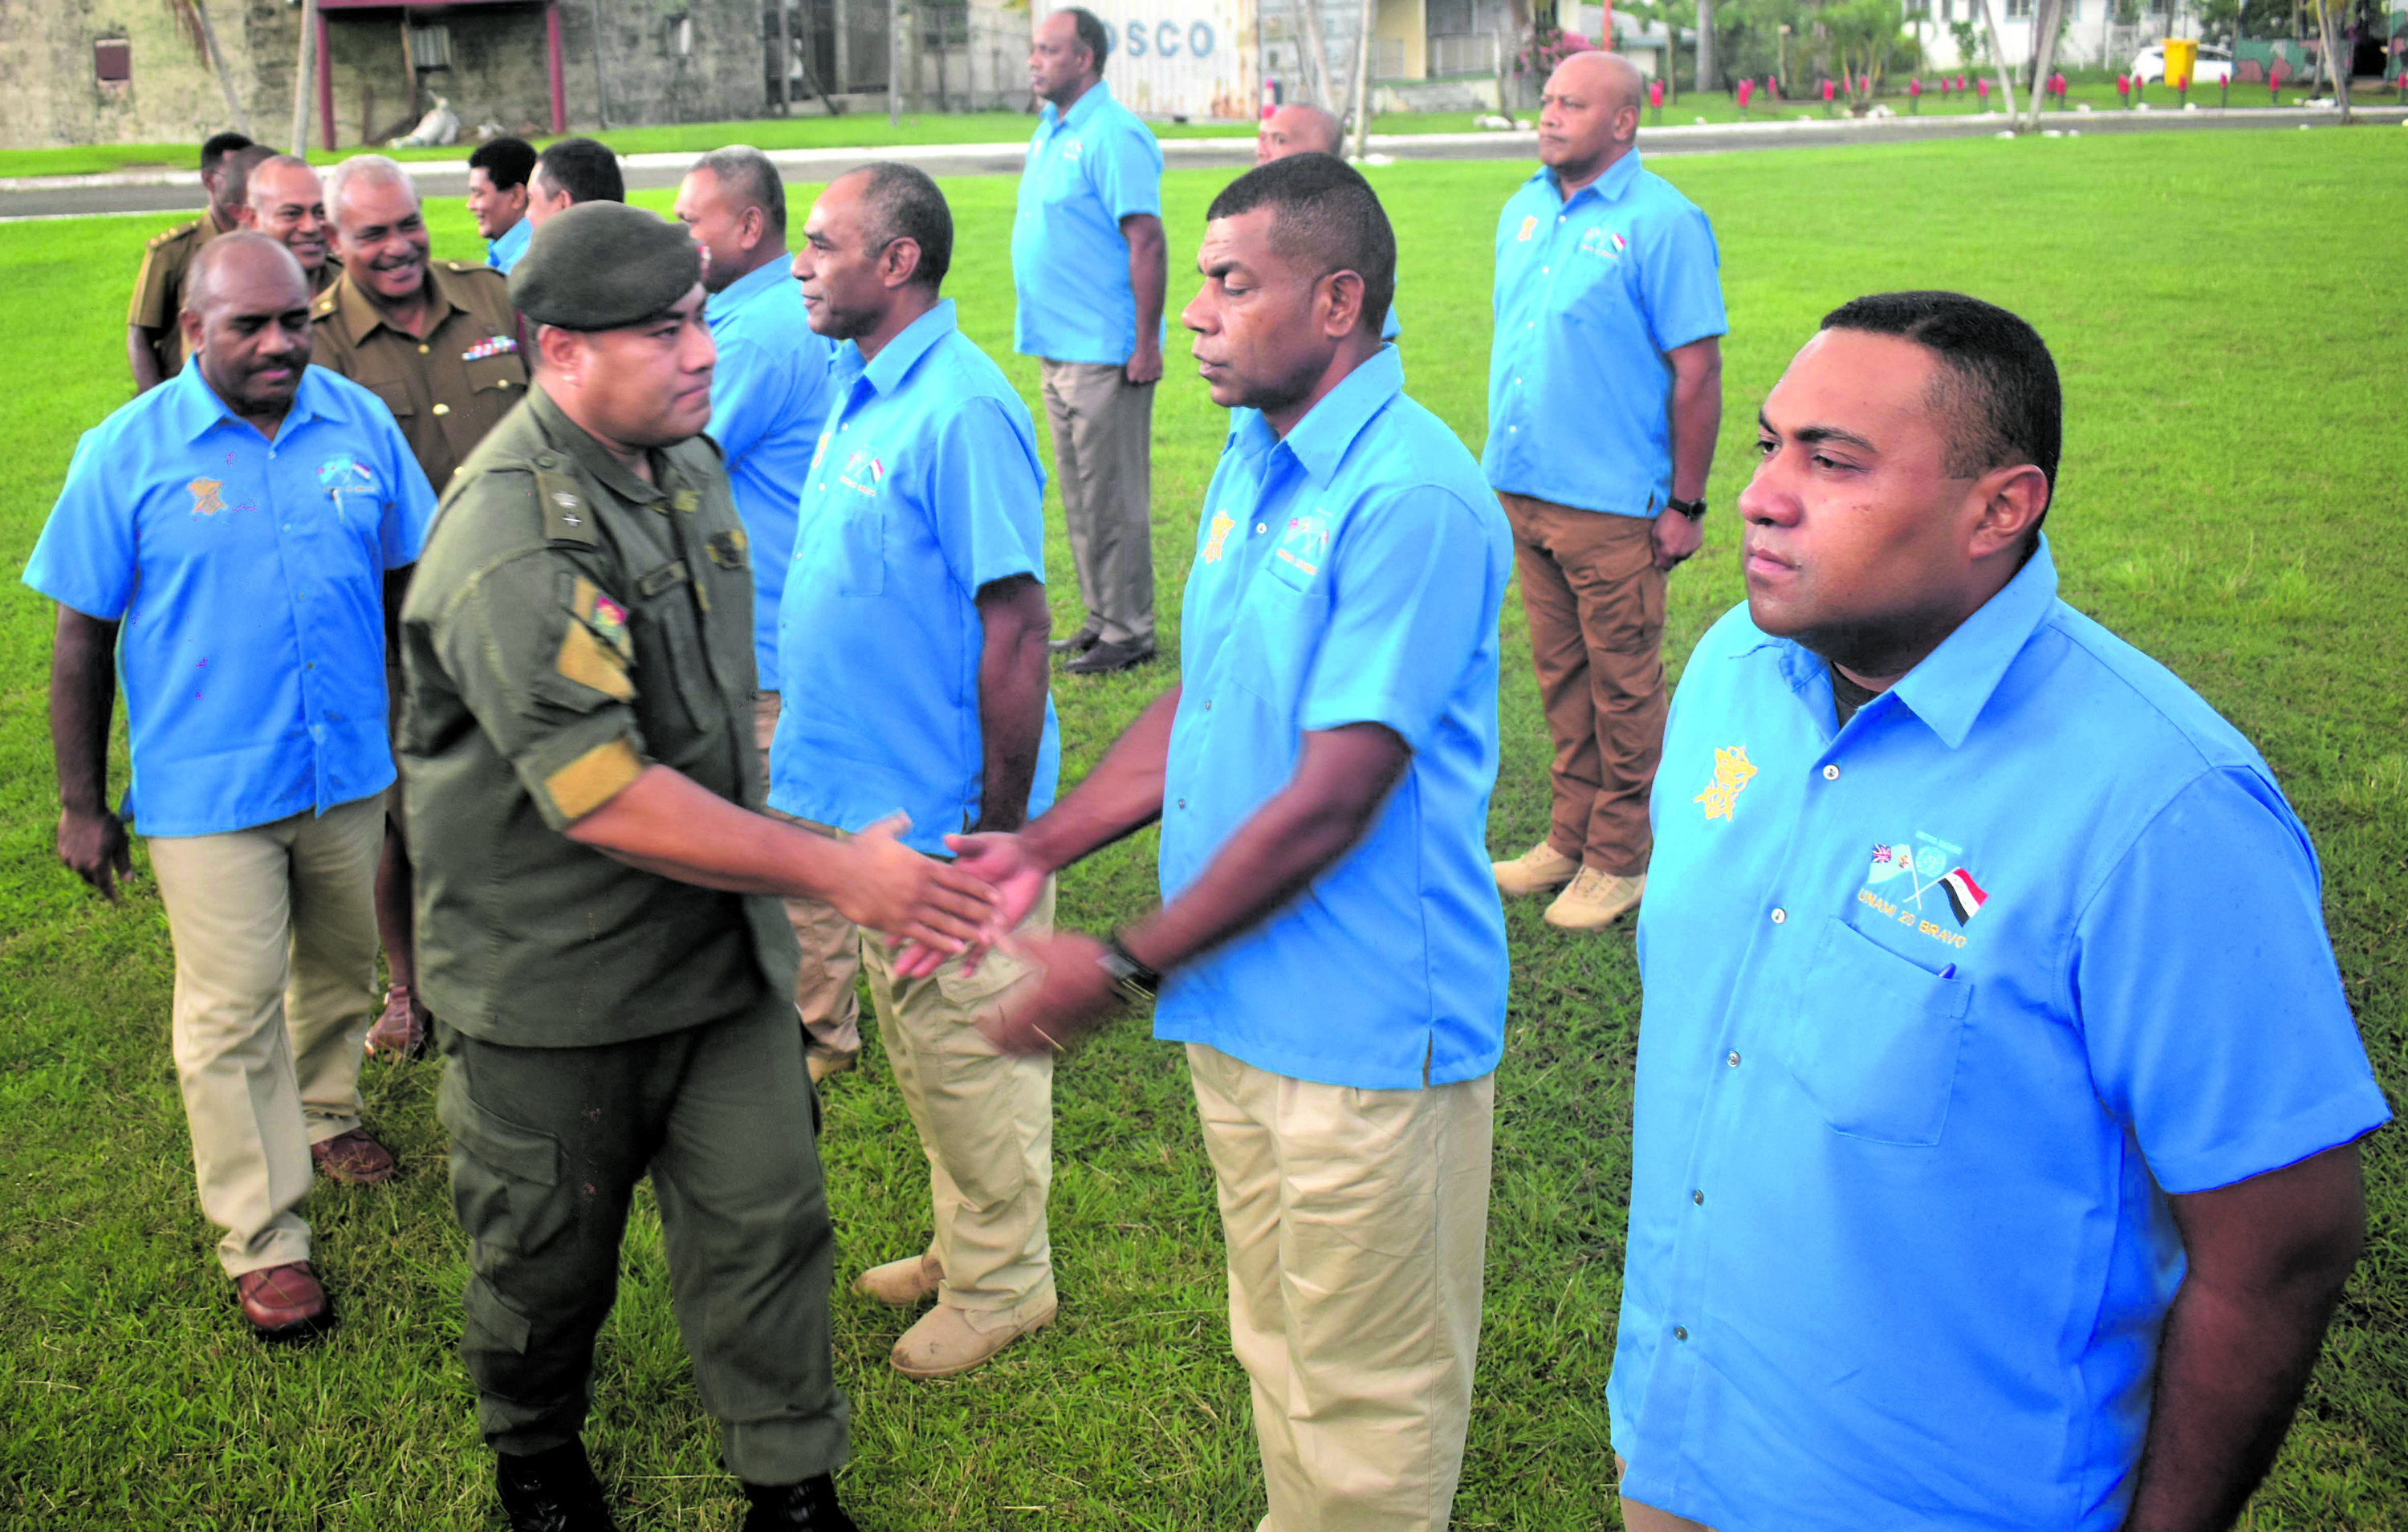 Director Peacekeeping Support Operations and Military Adviser to the Republic of Fiji Military Force, Lieutenant Colonel Pacolo Luveni farewells the officers in Nadi on Monday. Photo: WAISEA NASOKIA